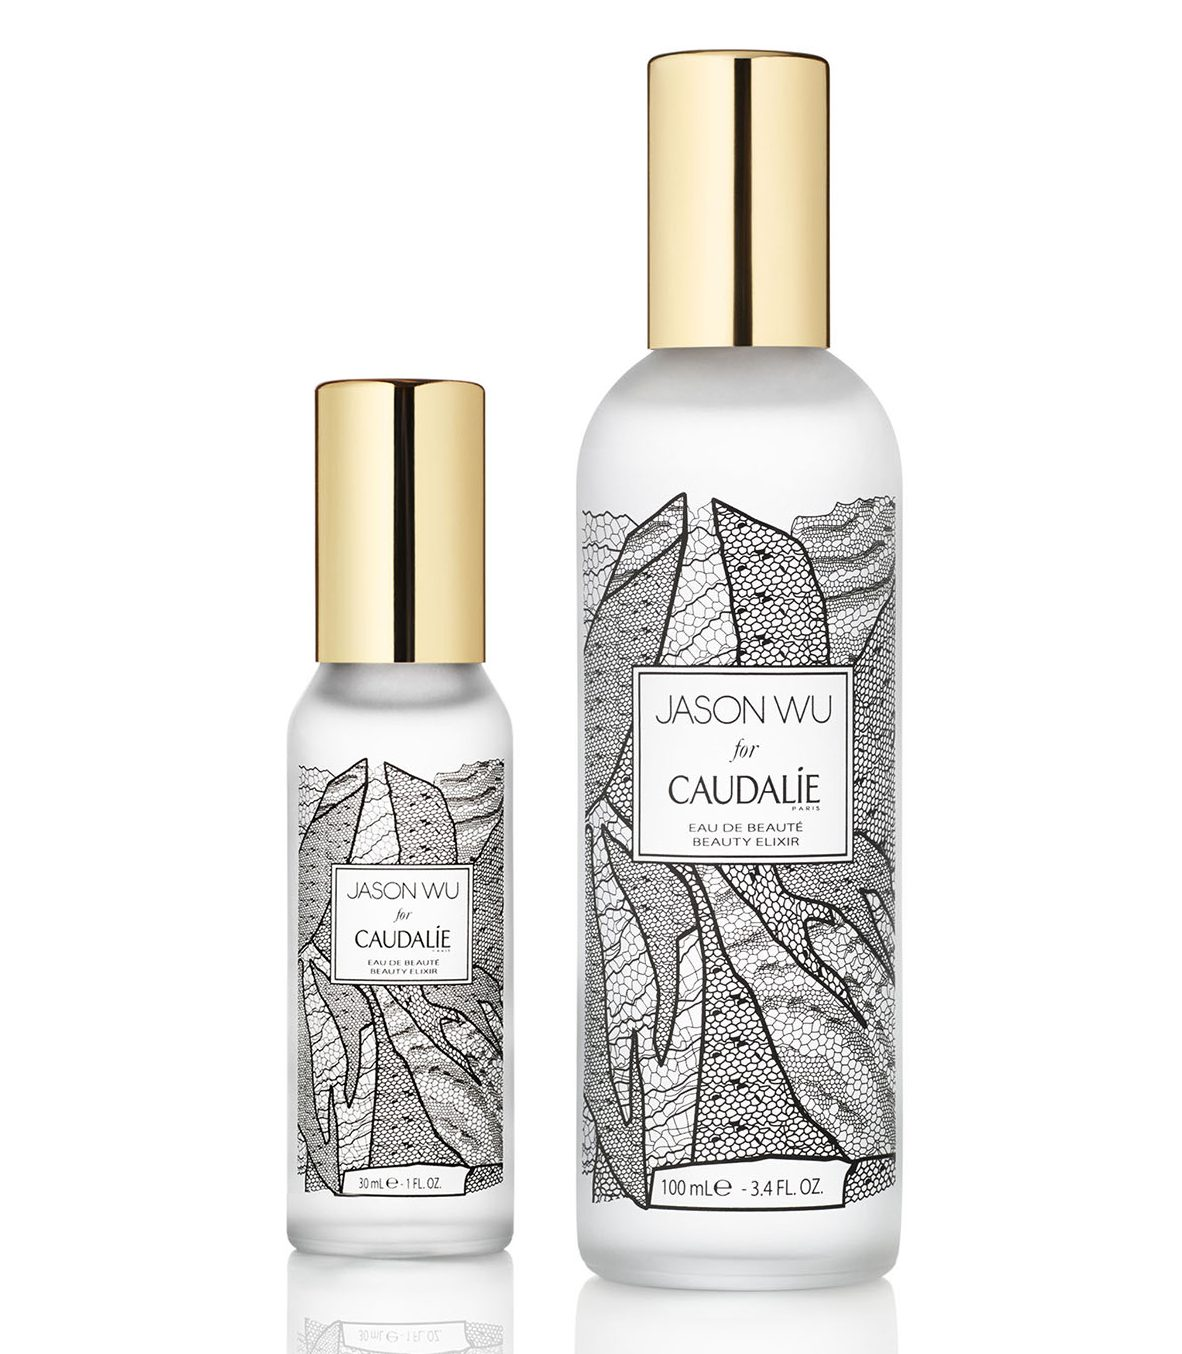 Caudalie x Jason Wu 100ml 30ml